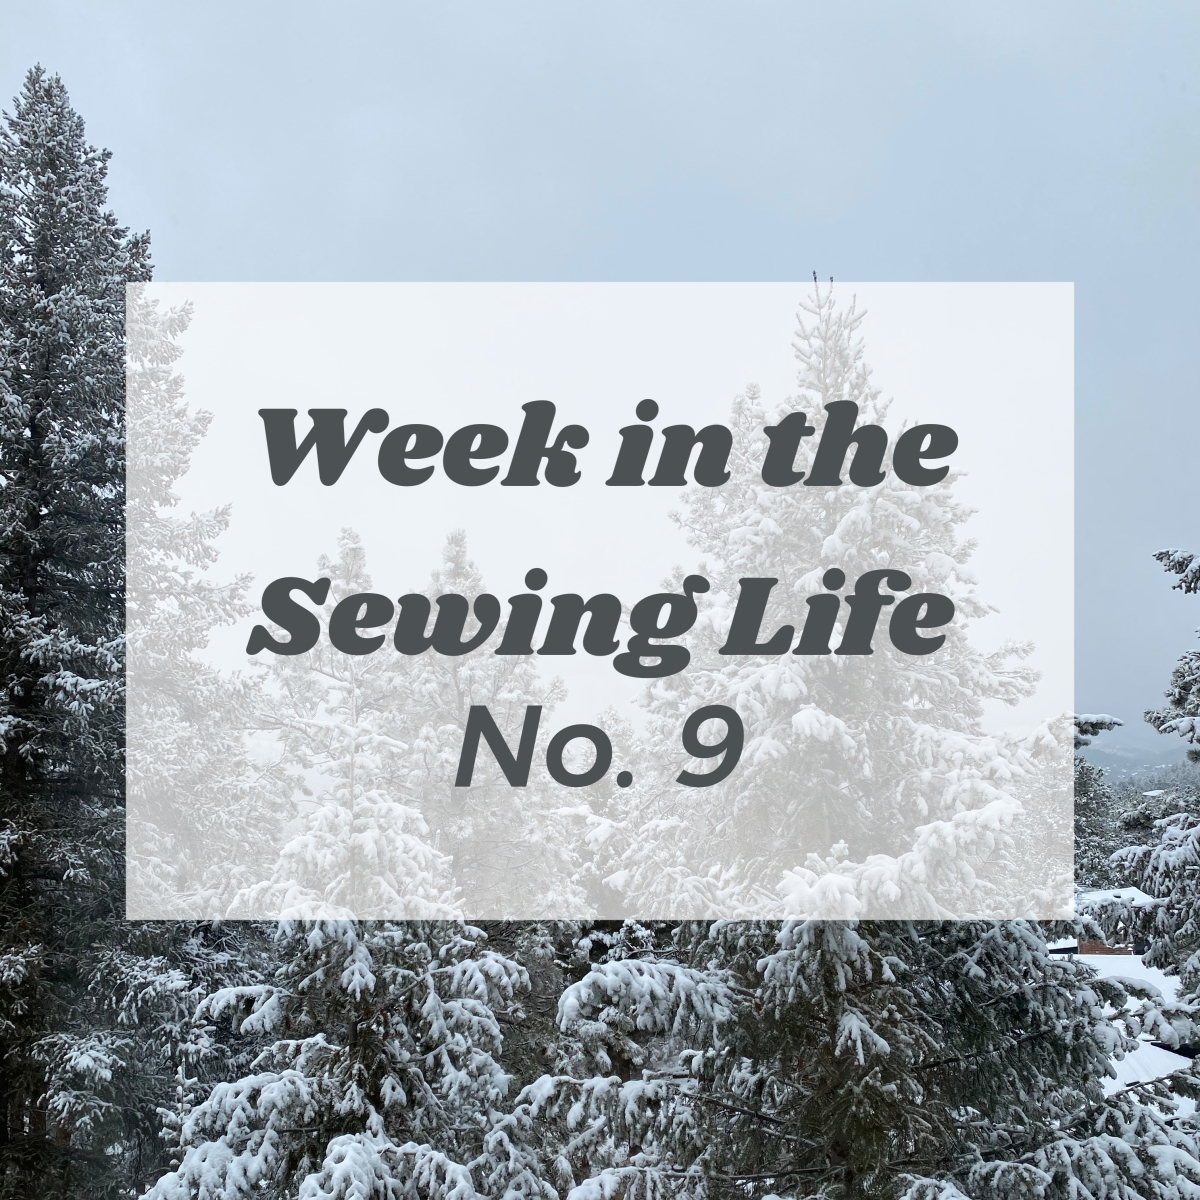 Week in the Sewing Life No.9